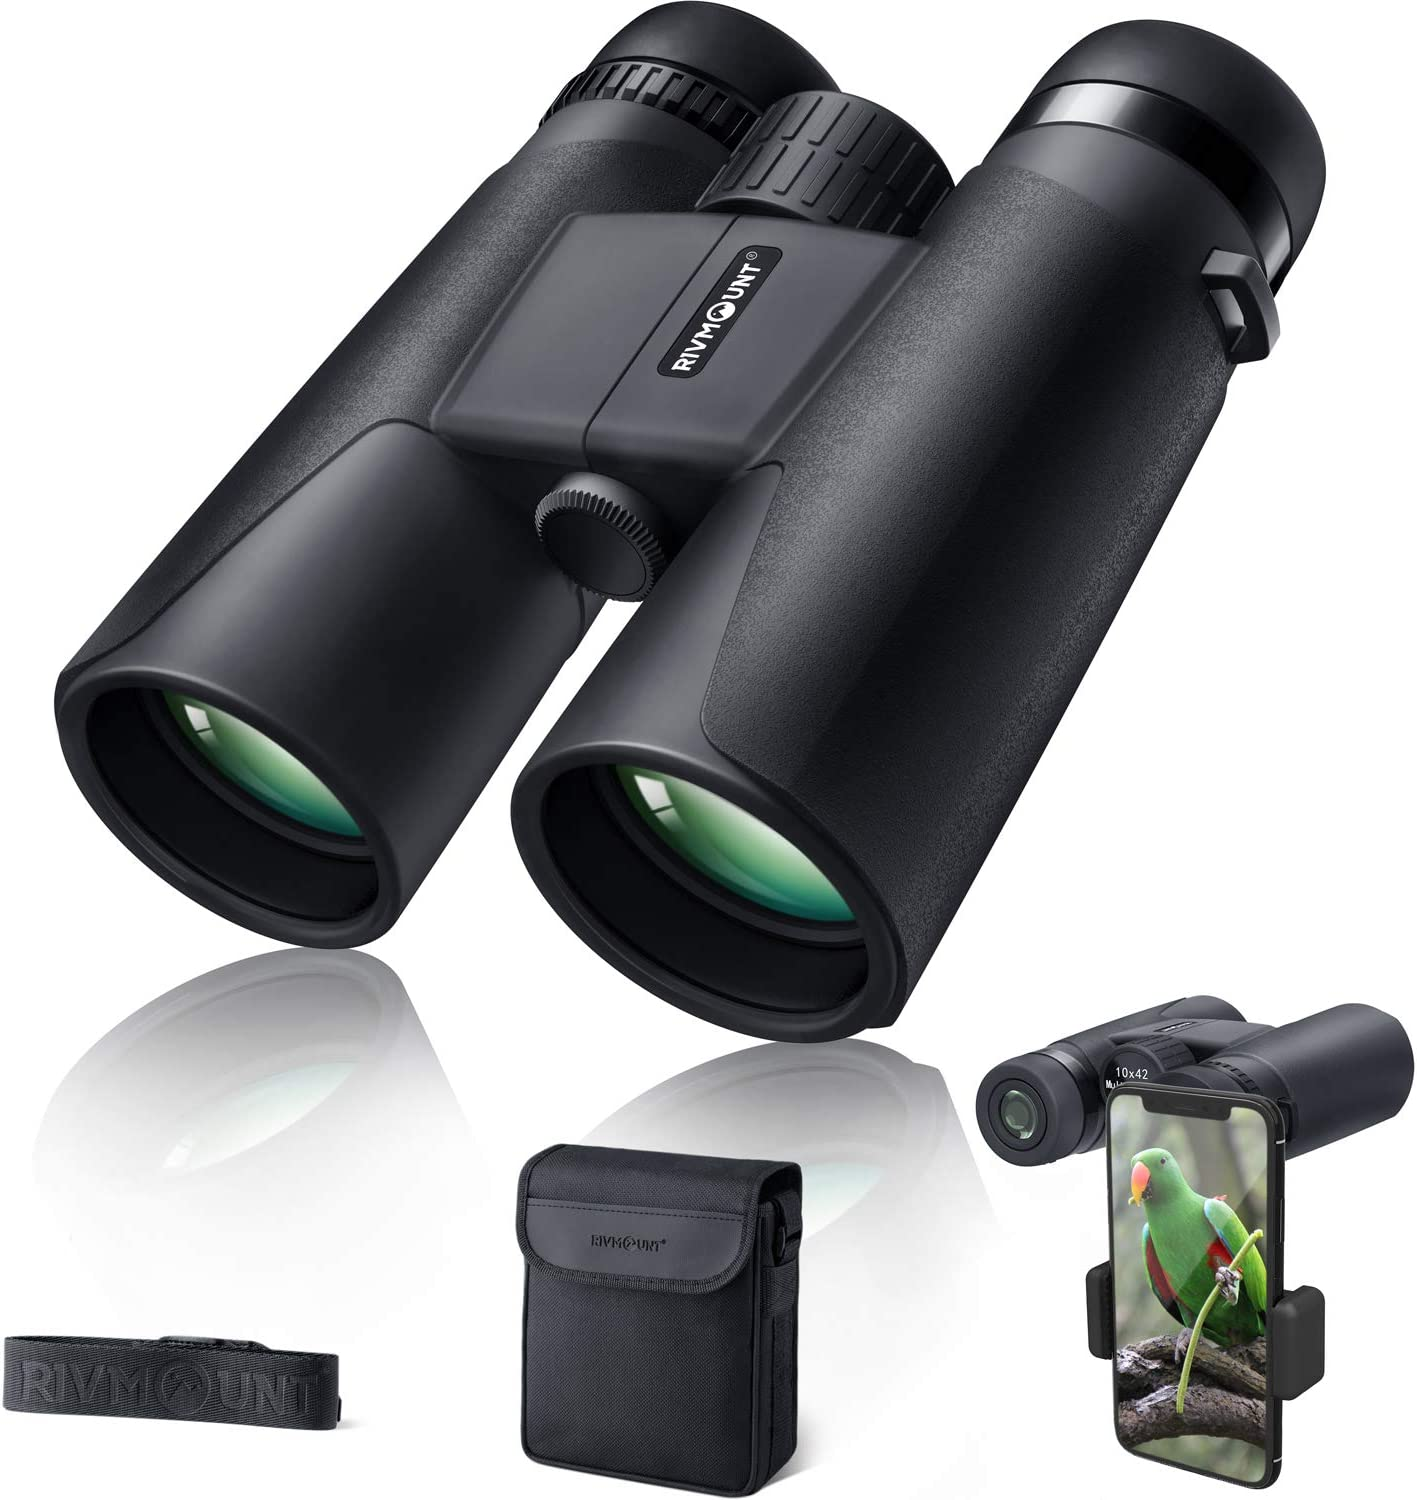 rivmount Binoculars for Adults 10×42 BAK-4 Roof Prism FMC Lens, HD Compact Durable Binoculars for Birdwatching Hunting Hiking and Traveling with Carrying Bag and Strap